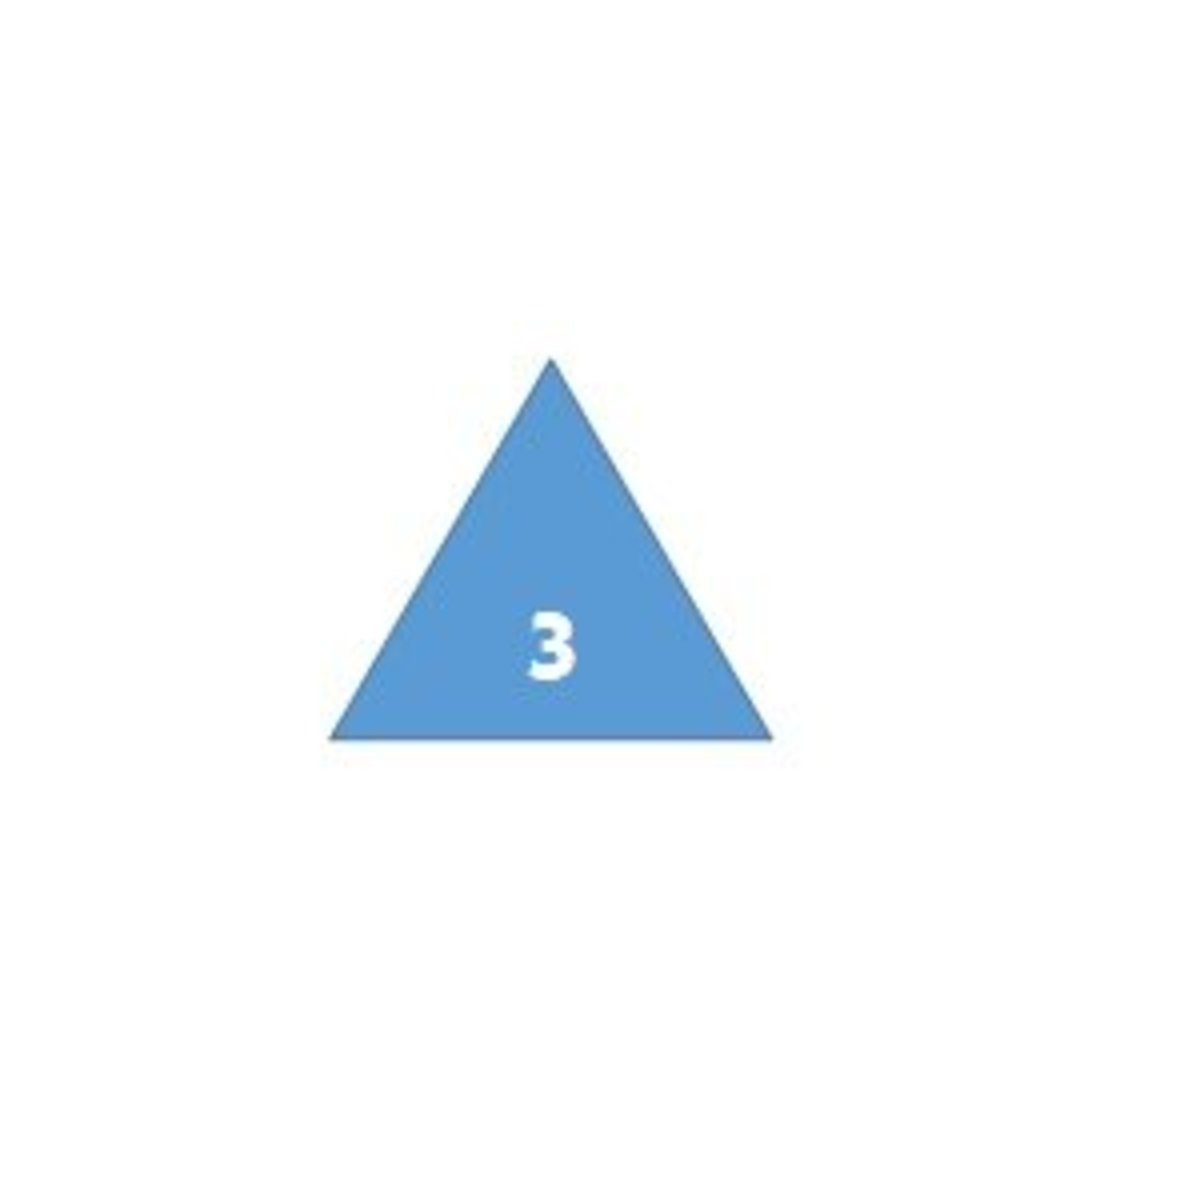 A triangle has 3 sides